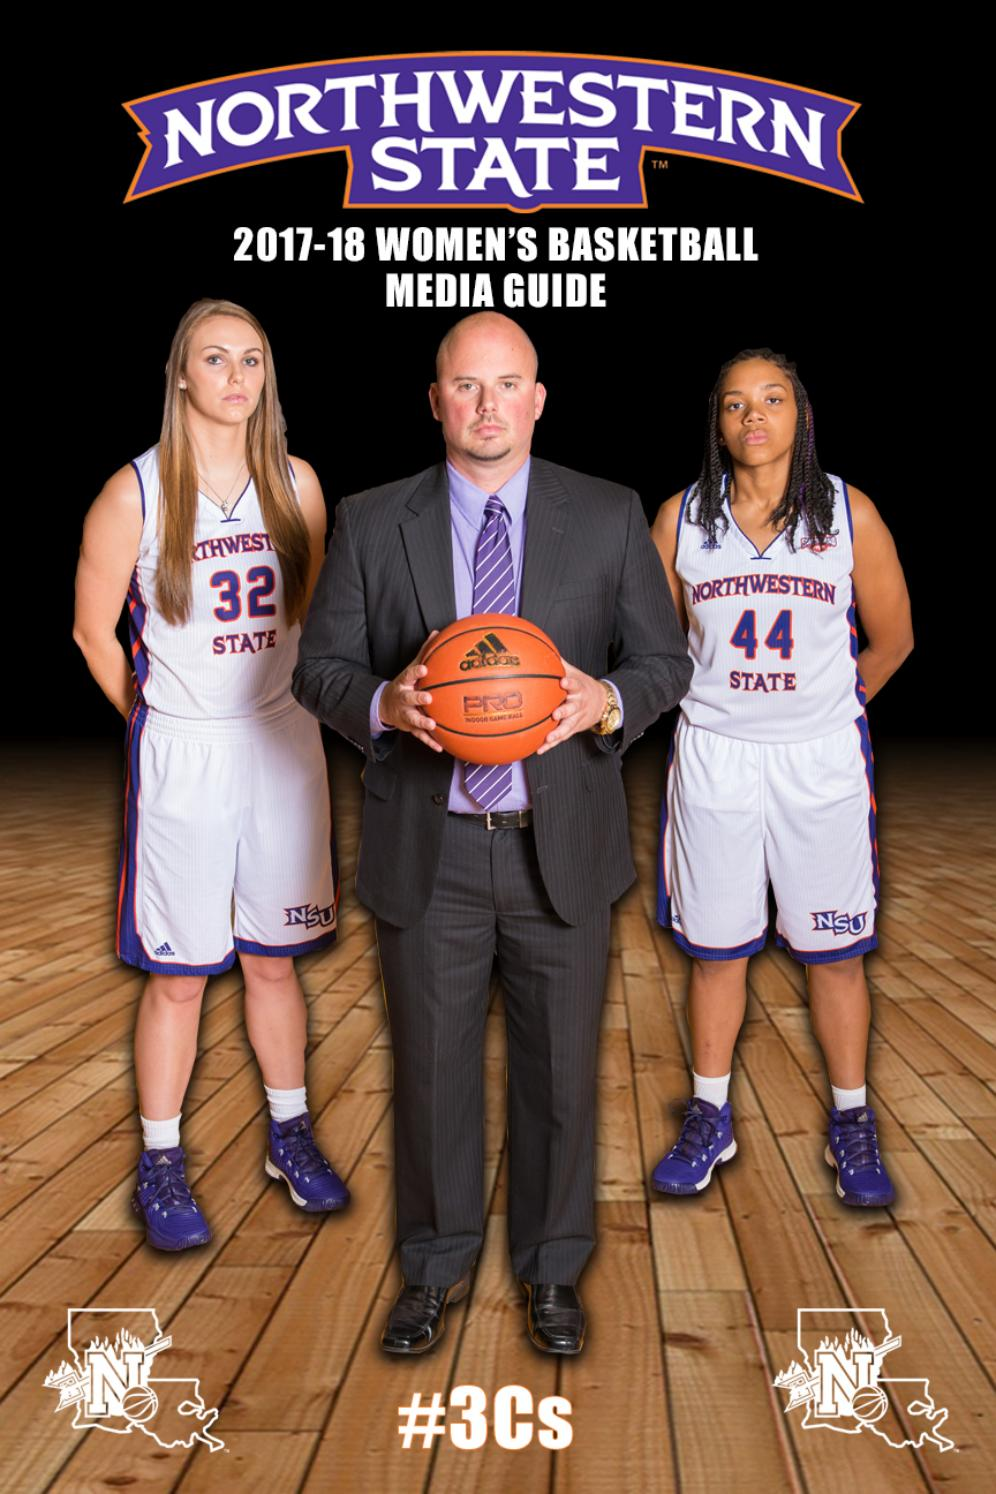 2017-18 Northwestern State Women's Basketball Media Guide by